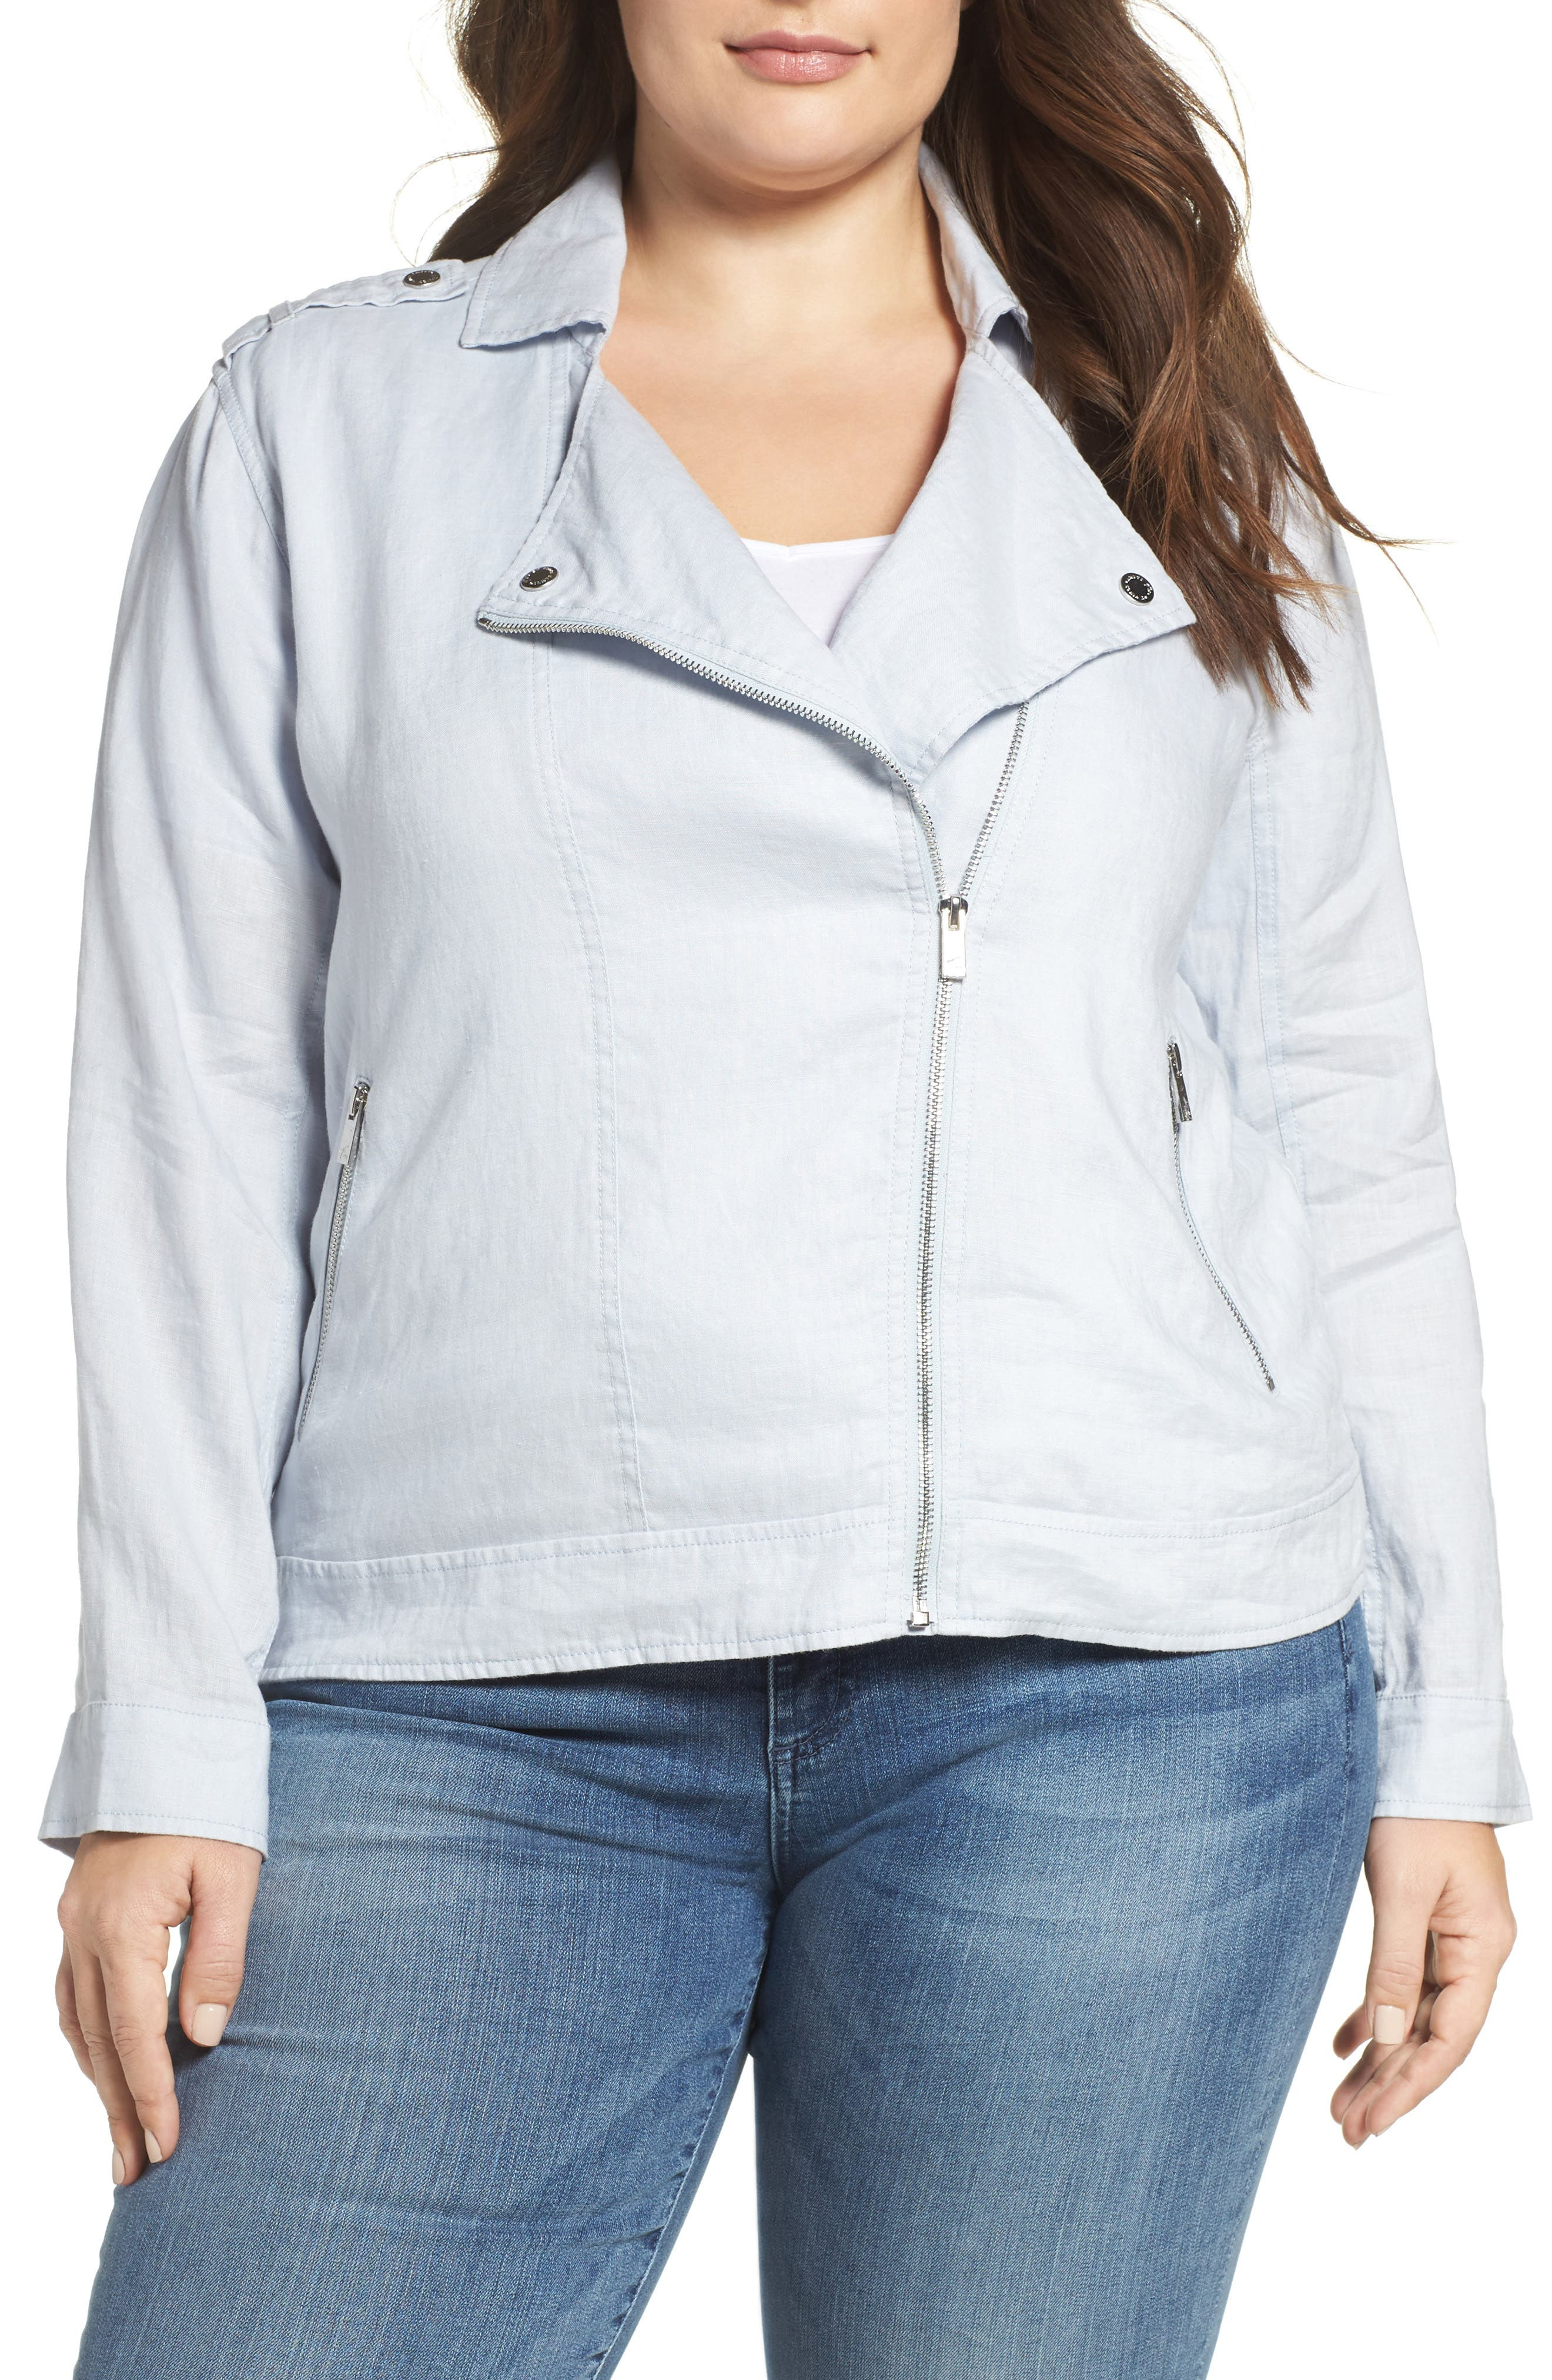 Alternate Image 1 Selected - Two by Vince Camuto Drapey Linen Moto Jacket (Plus Size)